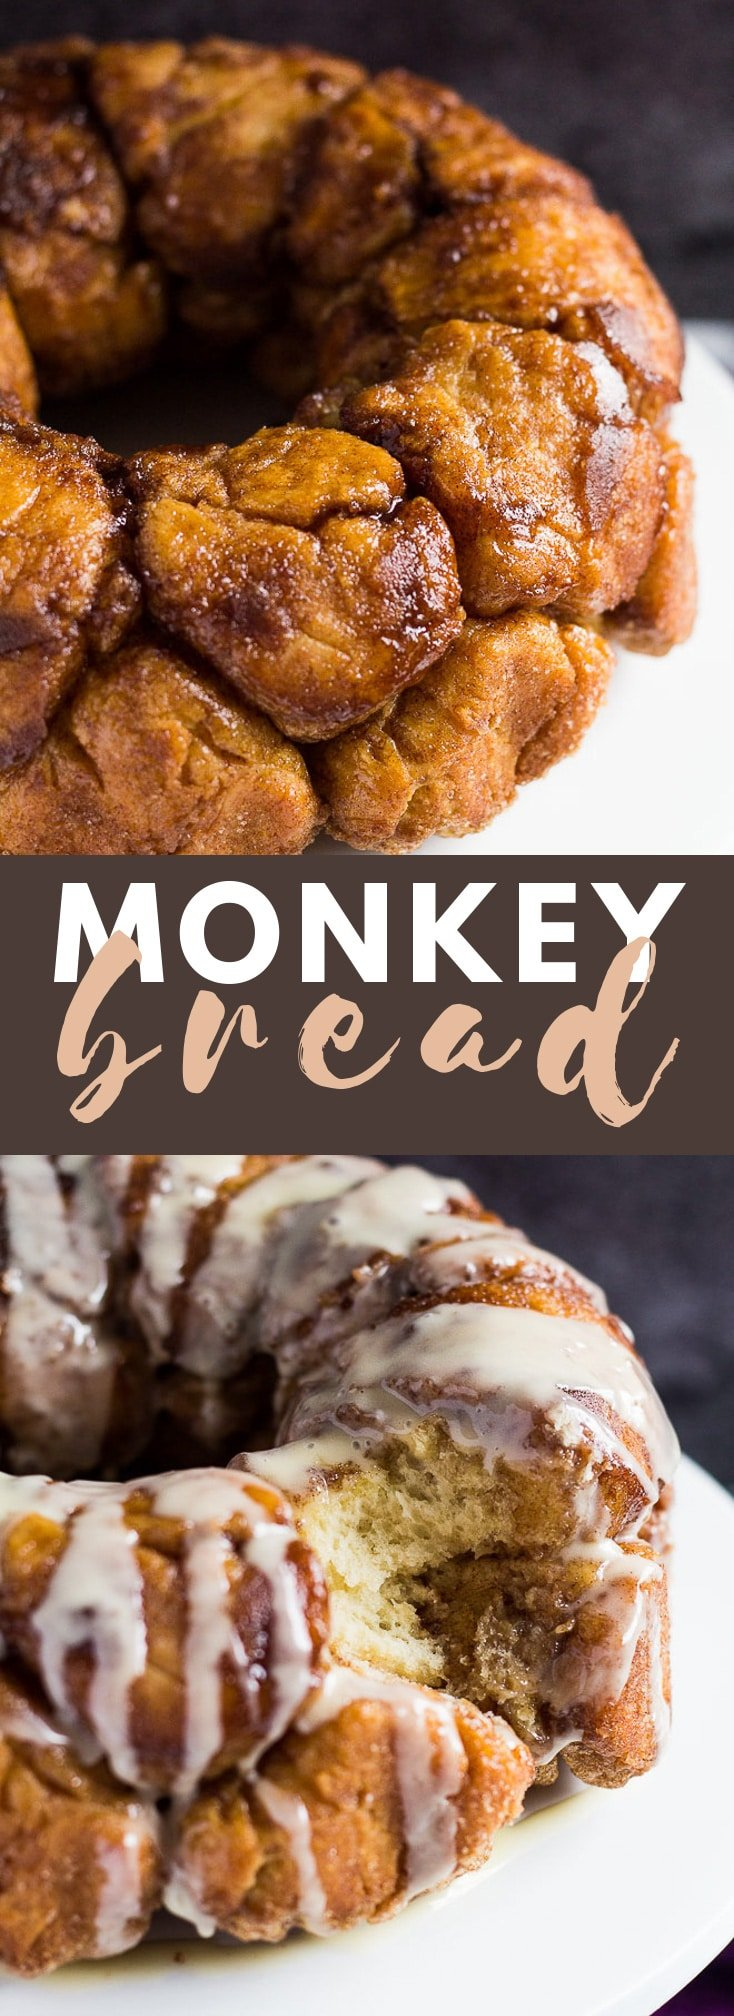 Monkey Bread – Balls of sweet bread dough coated in sugar and cinnamon, baked in a bundt pan and drizzled with a creamy glaze!